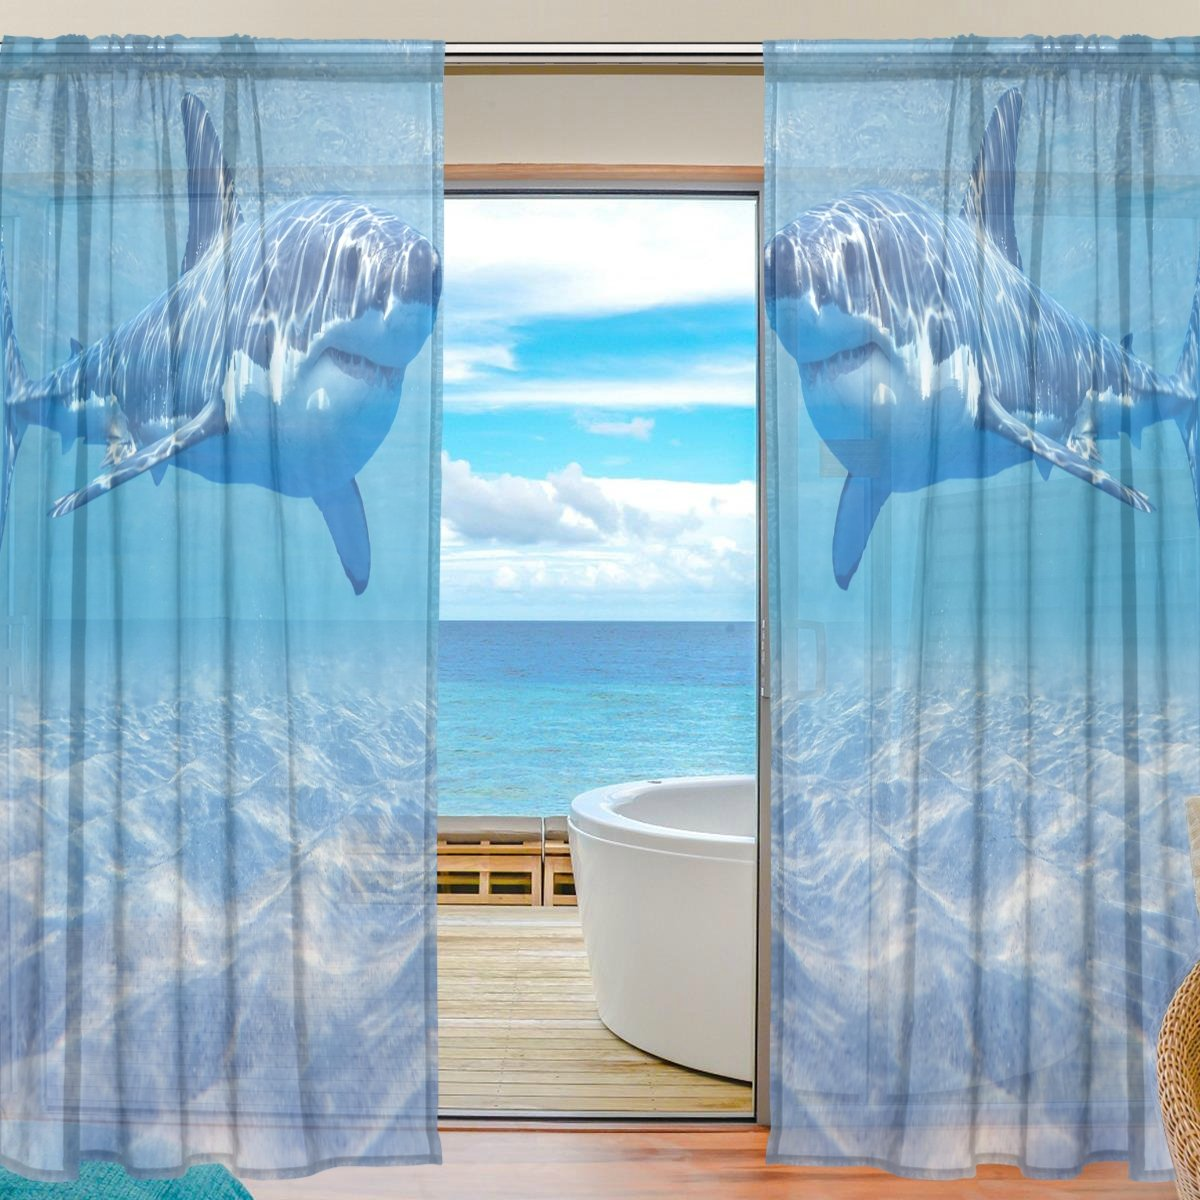 SEULIFE Window Sheer Curtain Ocean Sea Shark Voile Curtain Drapes for Door Kitchen Living Room Bedroom 55x78 inches 2 Panels g2519151p112c126s167